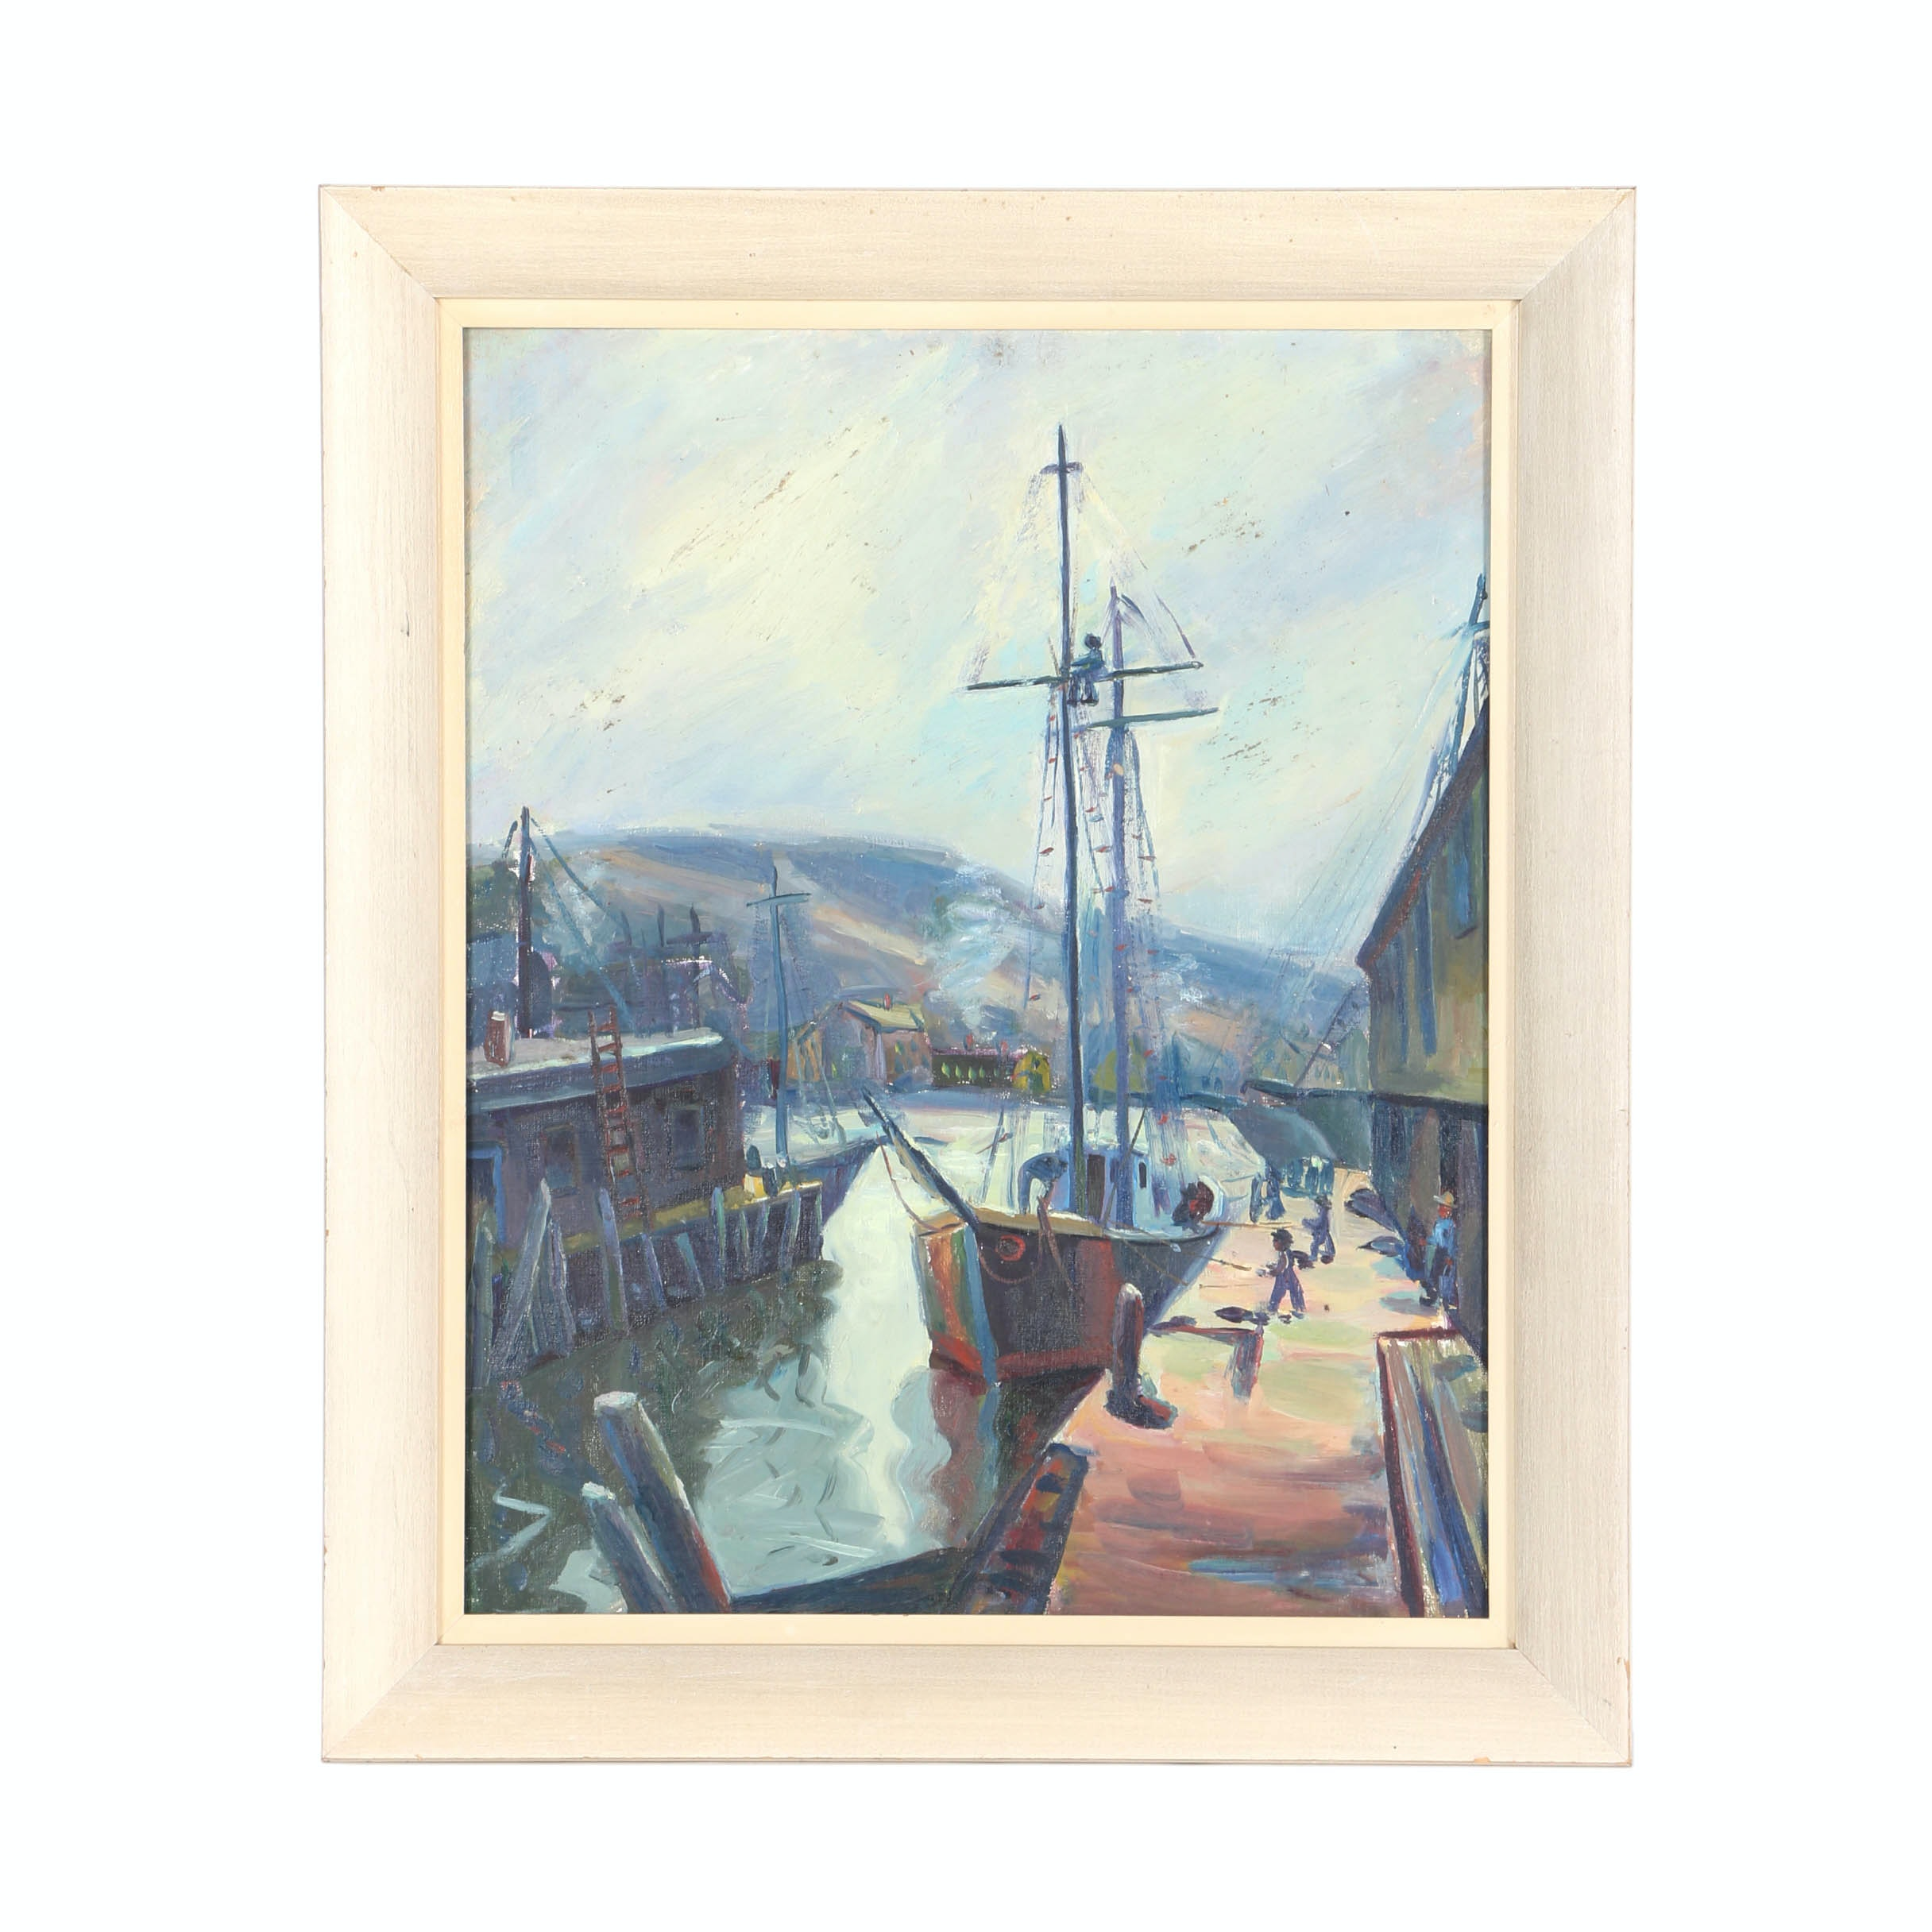 Original Oil Painting On Board of A Harbor